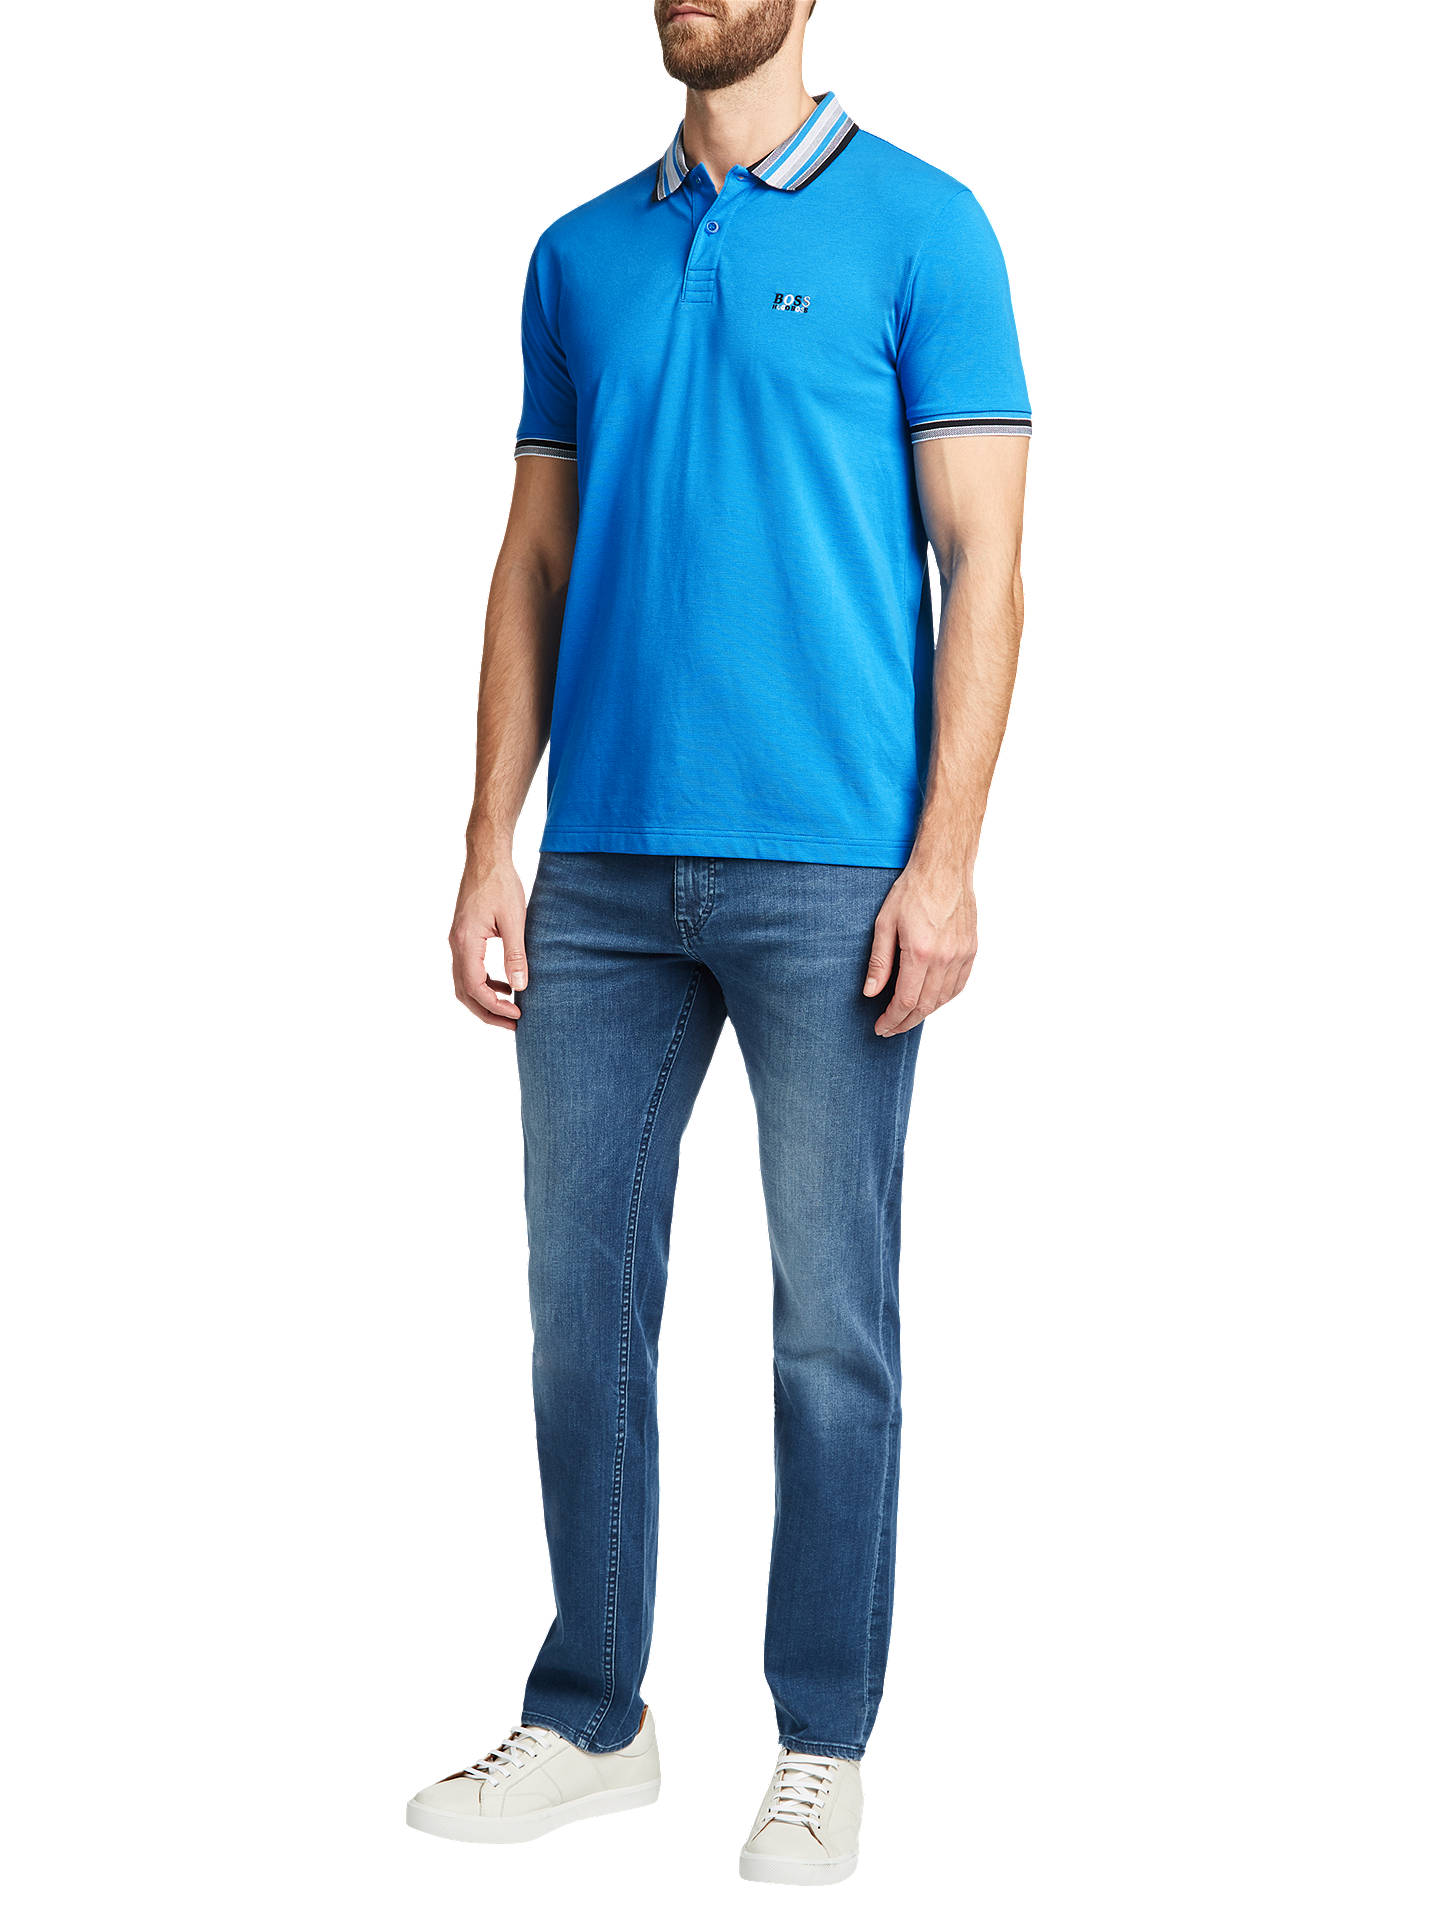 BuyBOSS Paddy Polo Shirt, Bright Blue, S Online at johnlewis.com